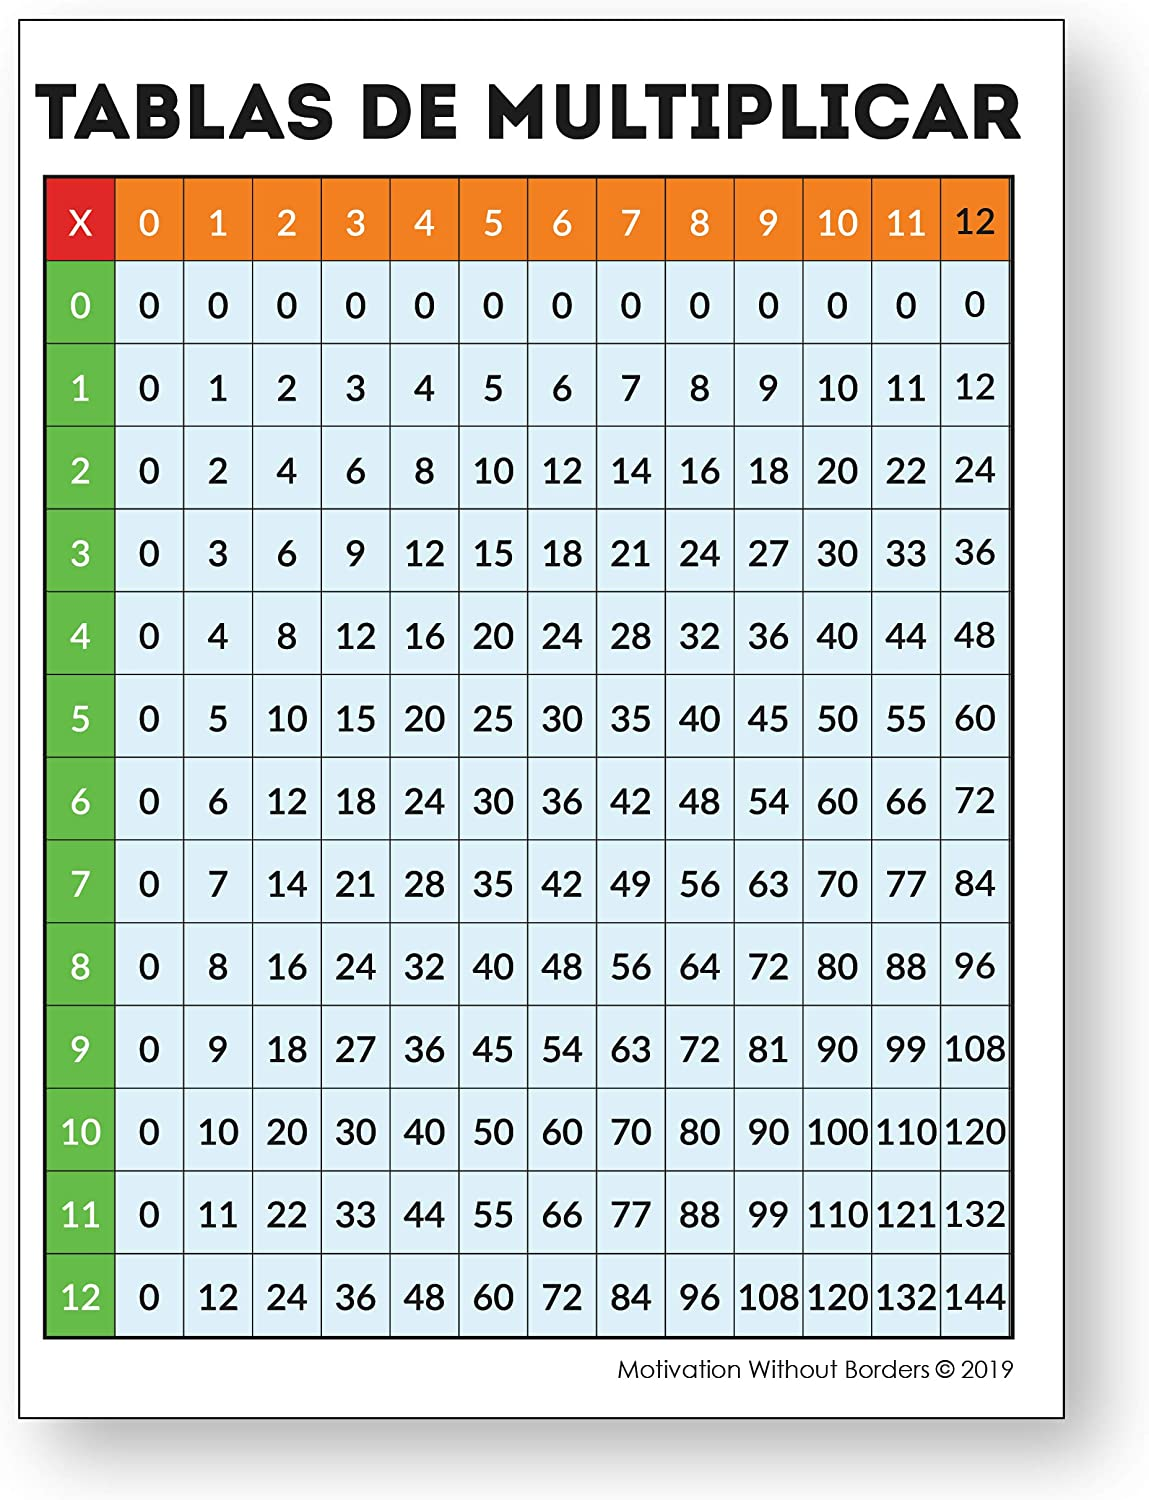 Multiplication Chart in Spanish (Laminated Multiplication Poster - Tablas  De Multiplicar) Great Multiplication Table for Spanish Classroom  Decorations